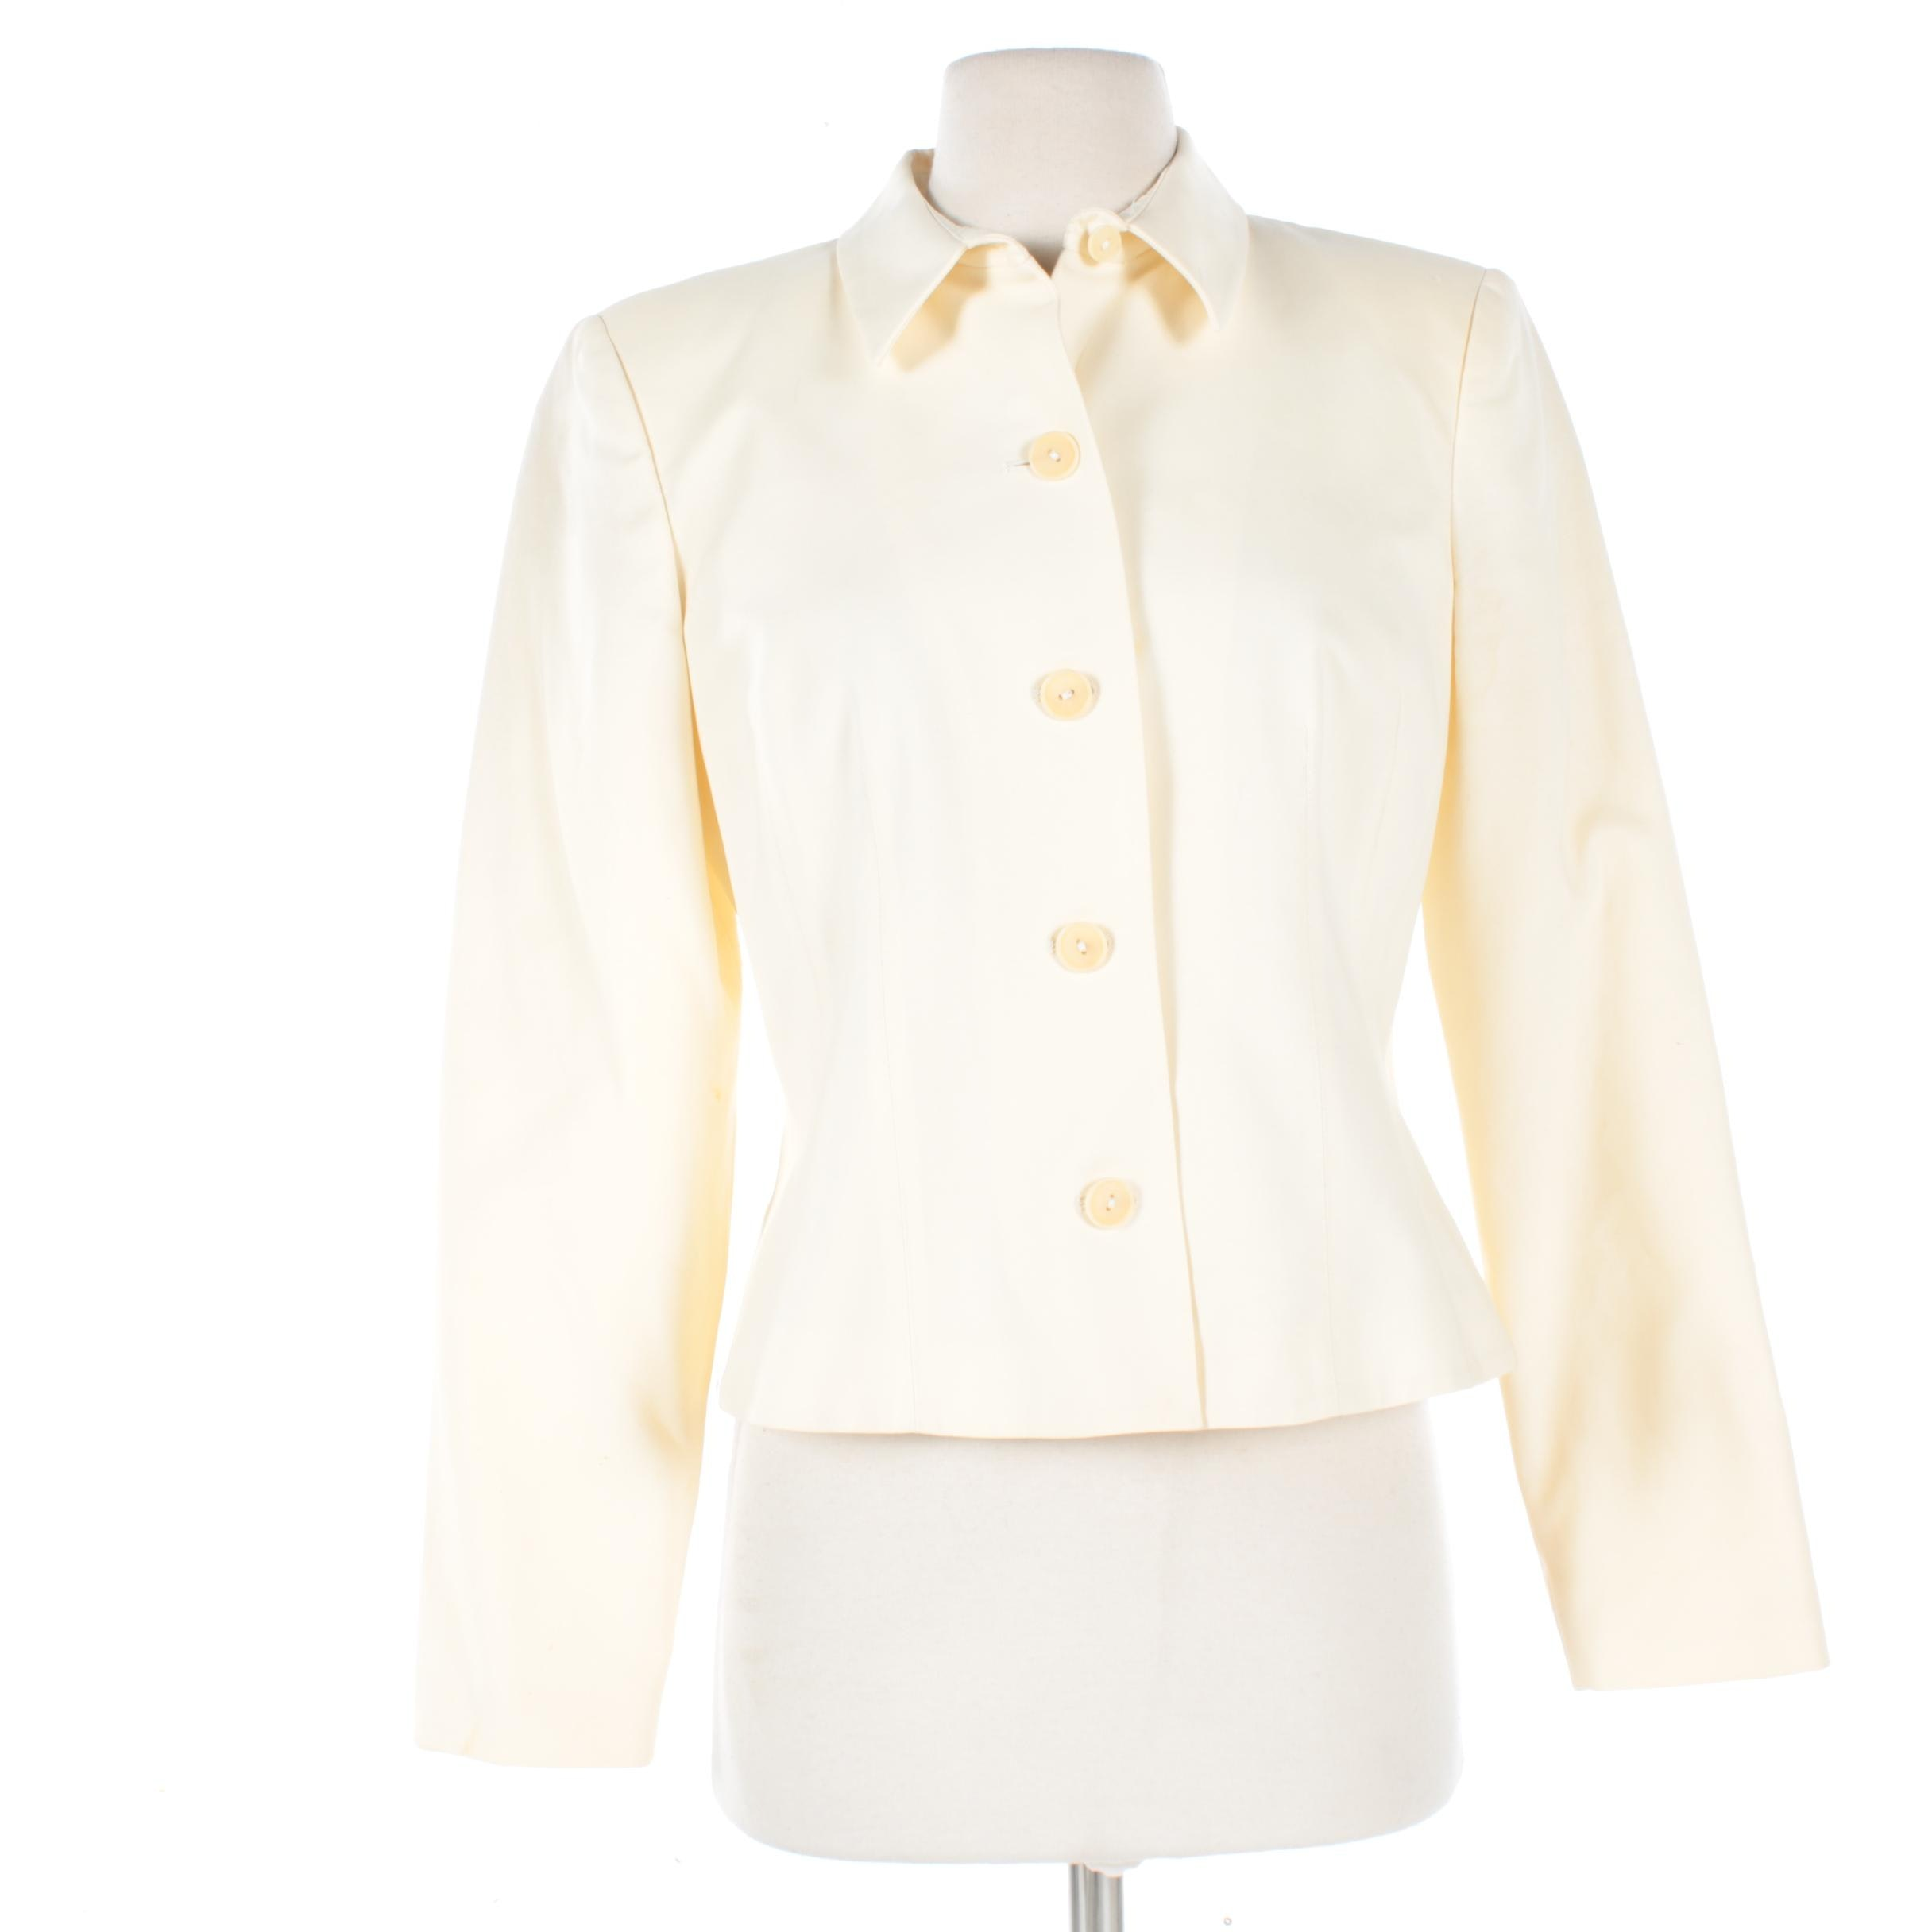 Women's OSCAR Oscar de la Renta Cotton Suit Jacket